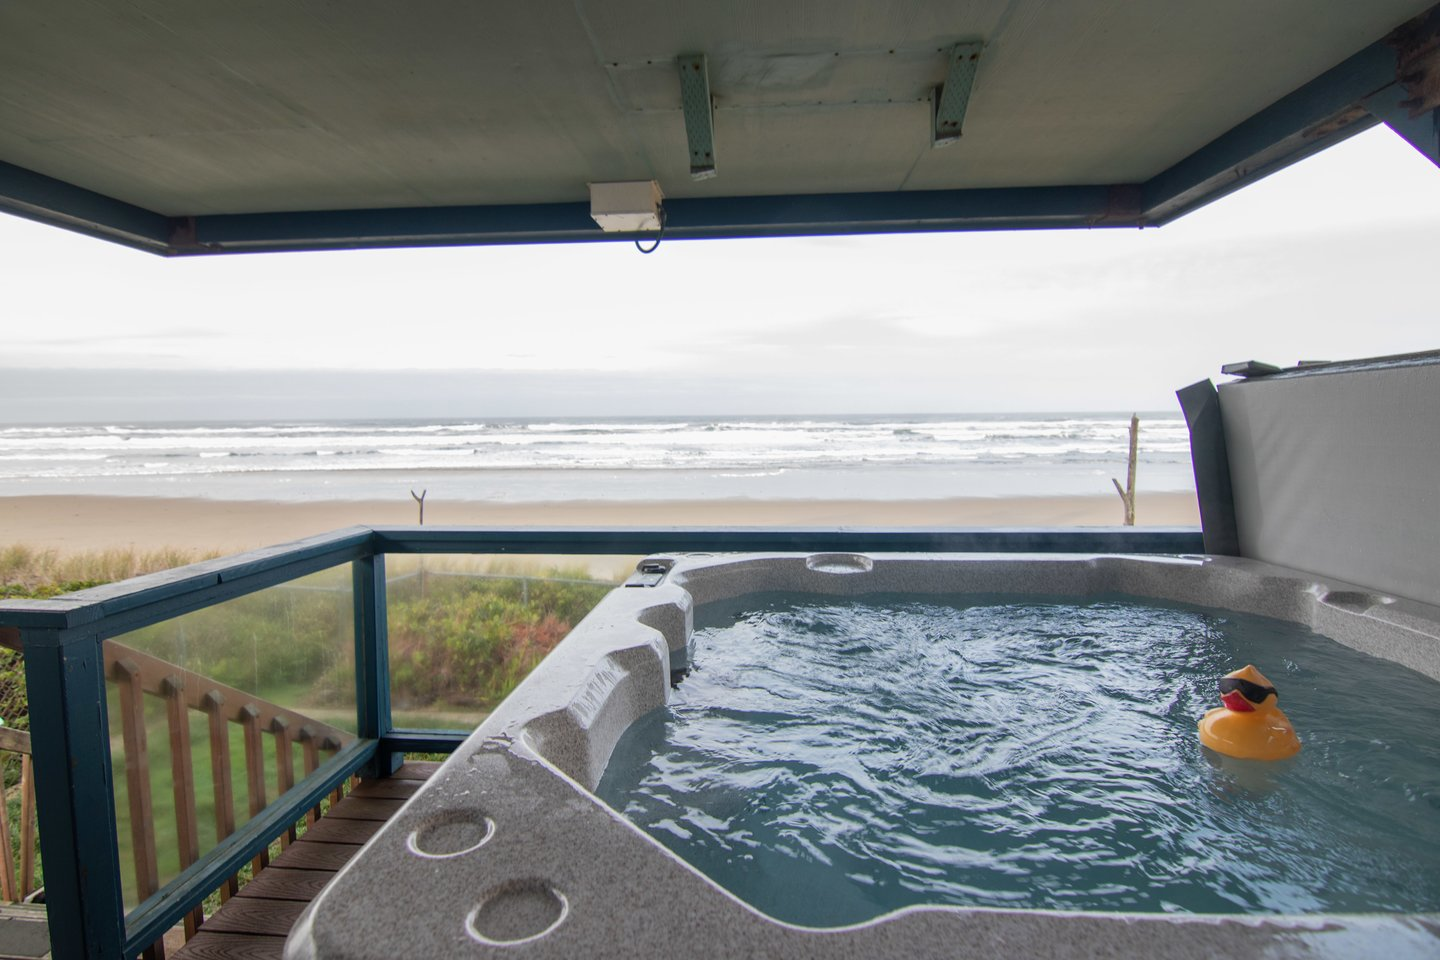 Relax in the hot tub right on the deck with ocean views!